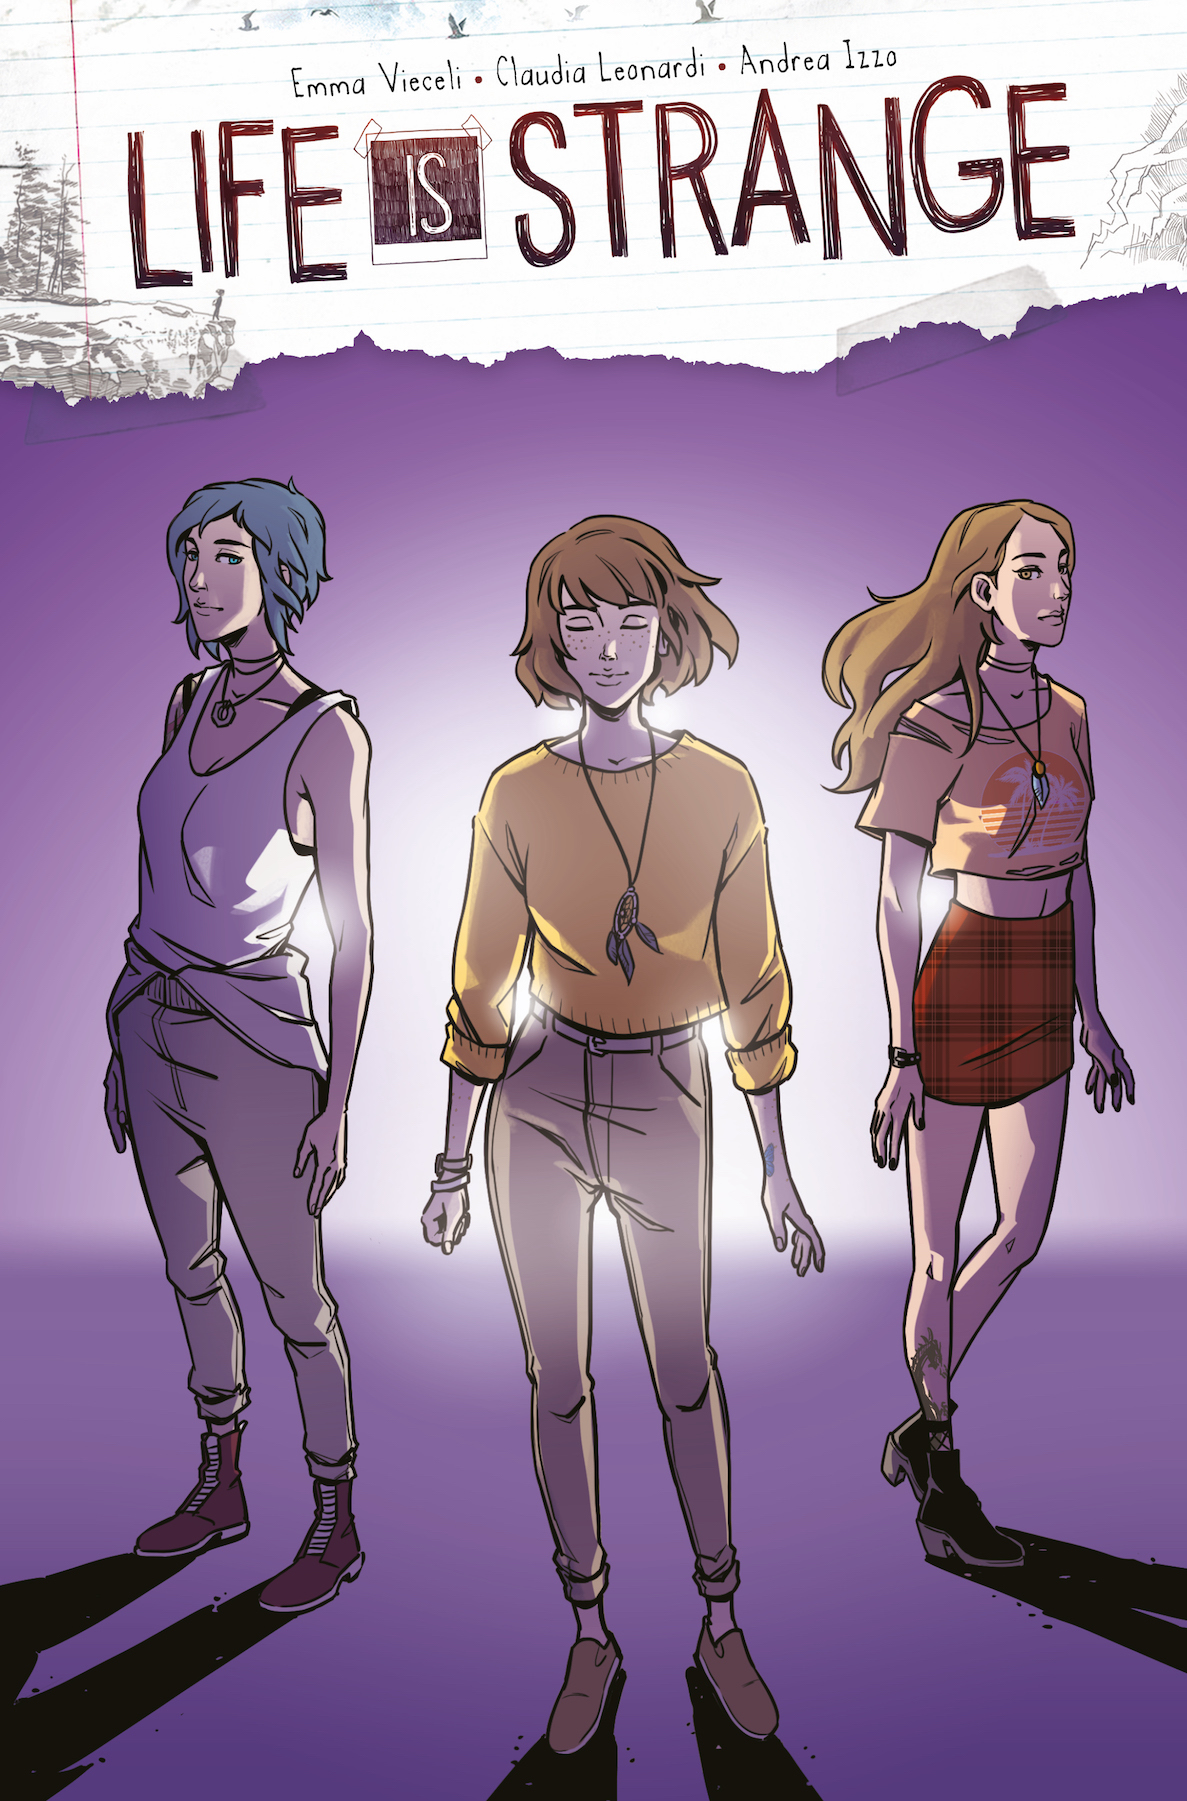 LIFE IS STRANGE #5 CVR D LEONARDI (MR)